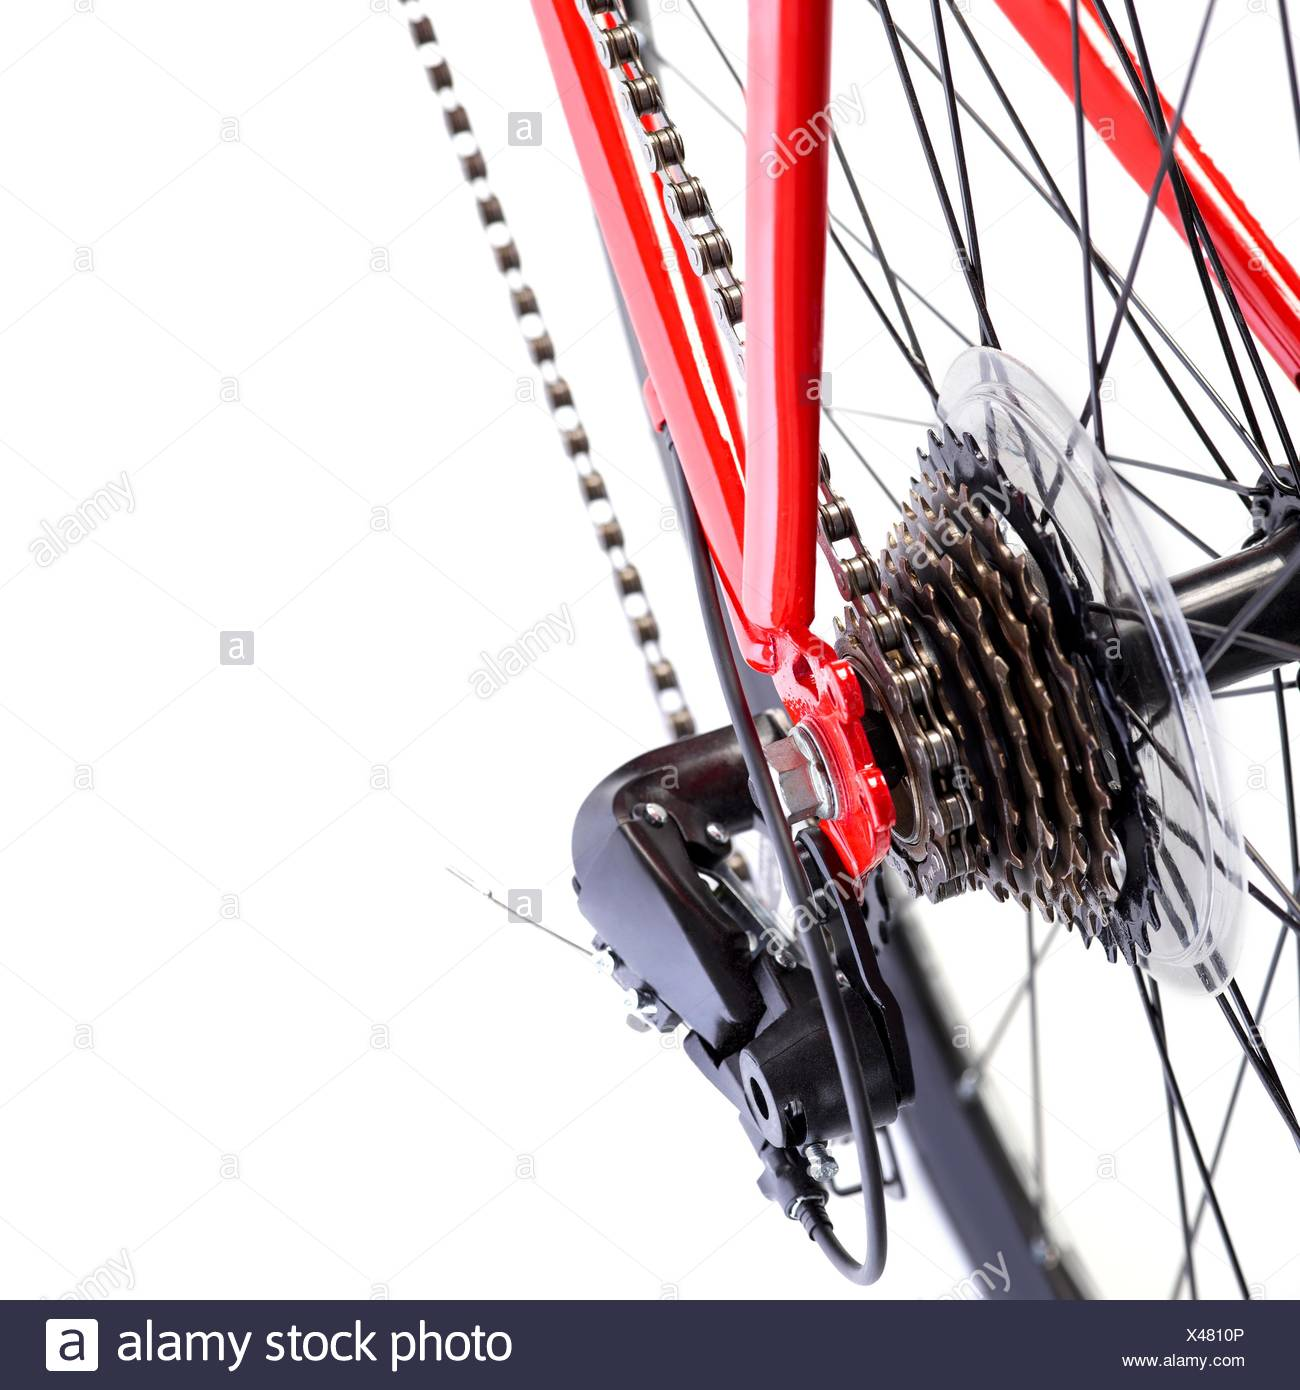 Bicycle rear gears, close up. - Stock Image